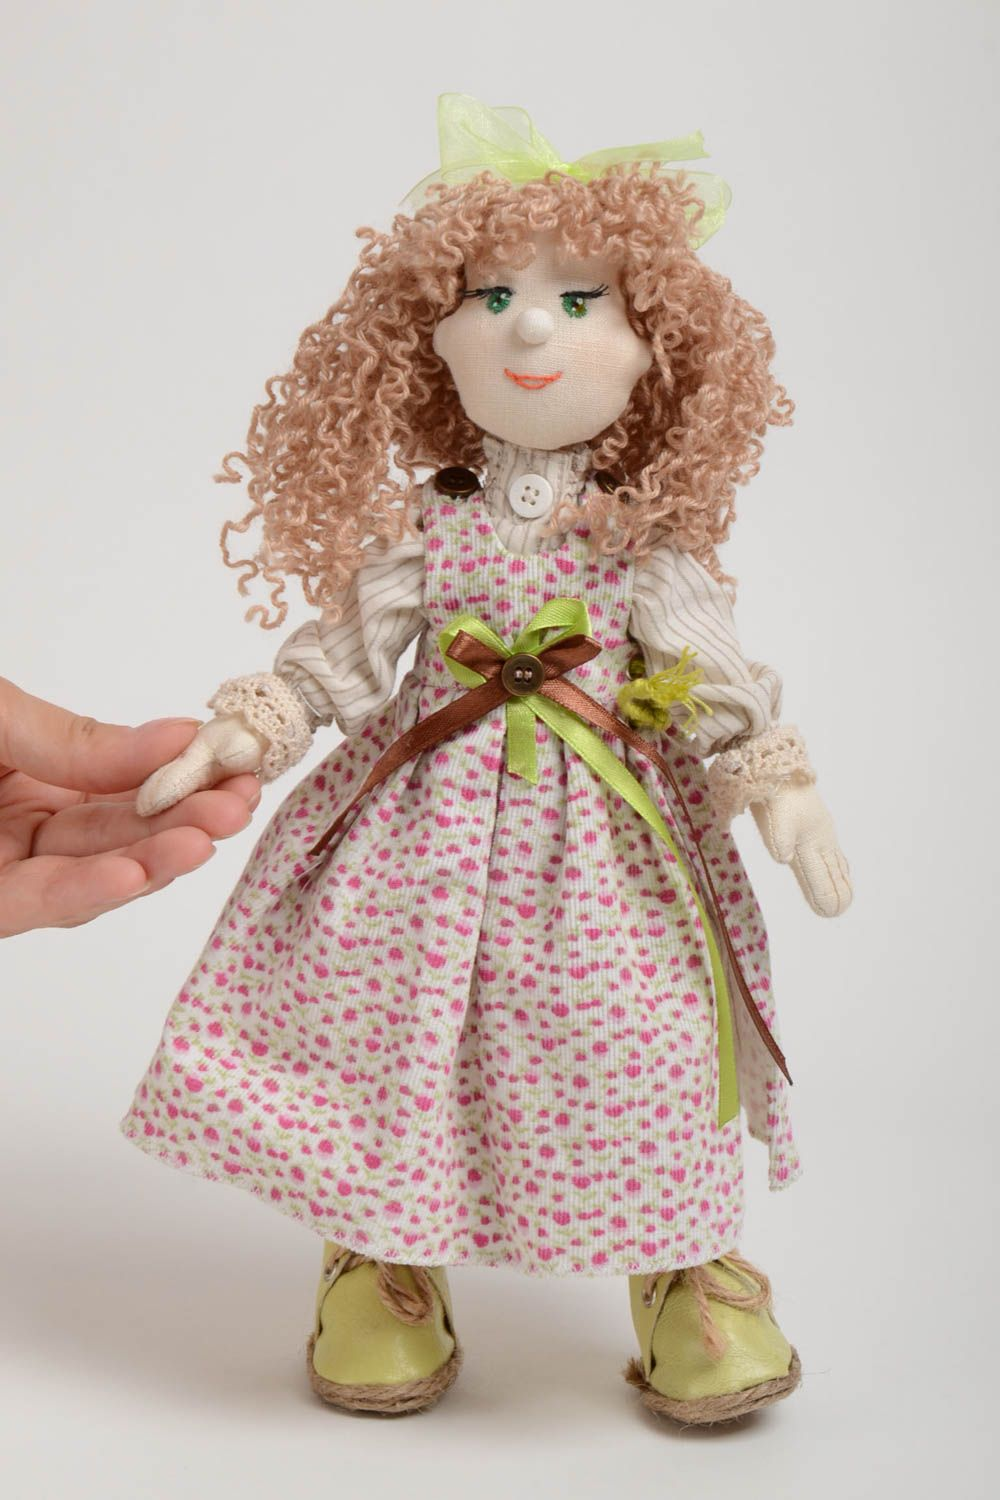 Designer fabric doll made of natural materials with movable limbs home decor photo 5